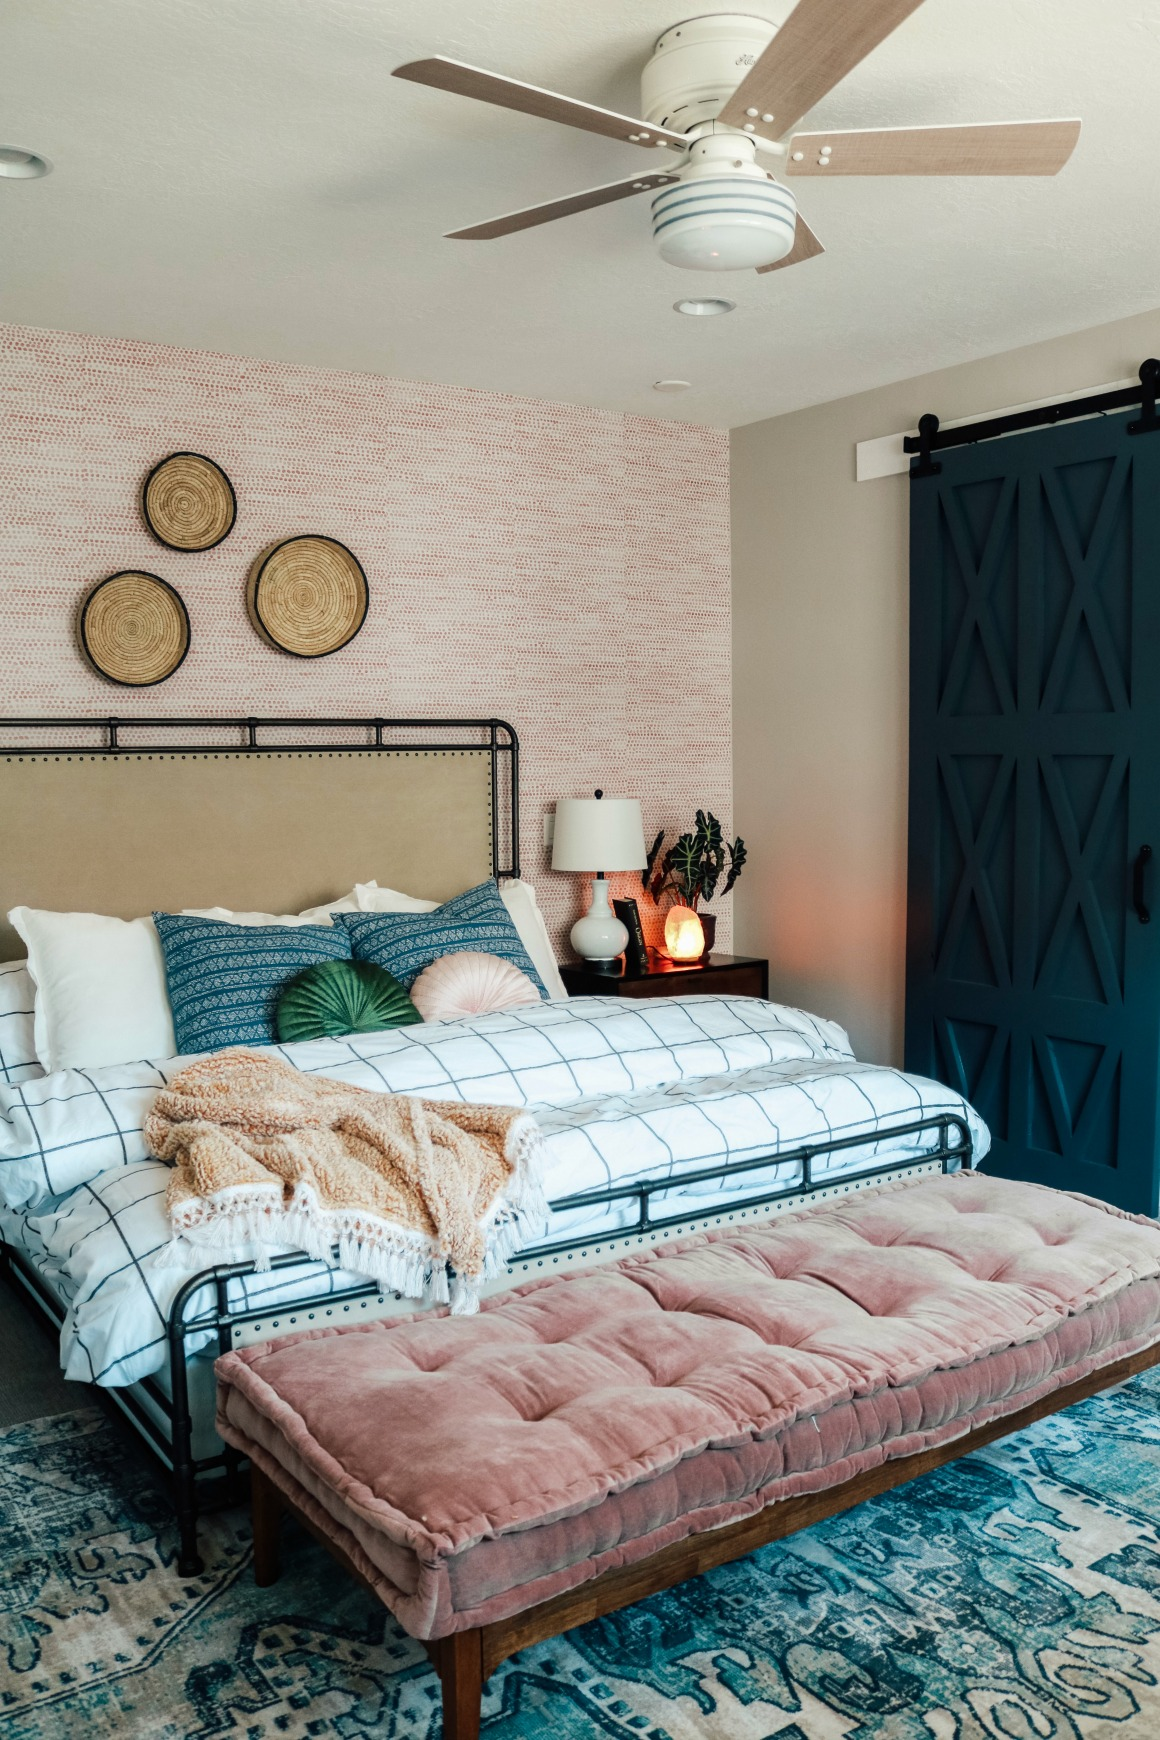 5 Simple Changes to Transform a Bedroom